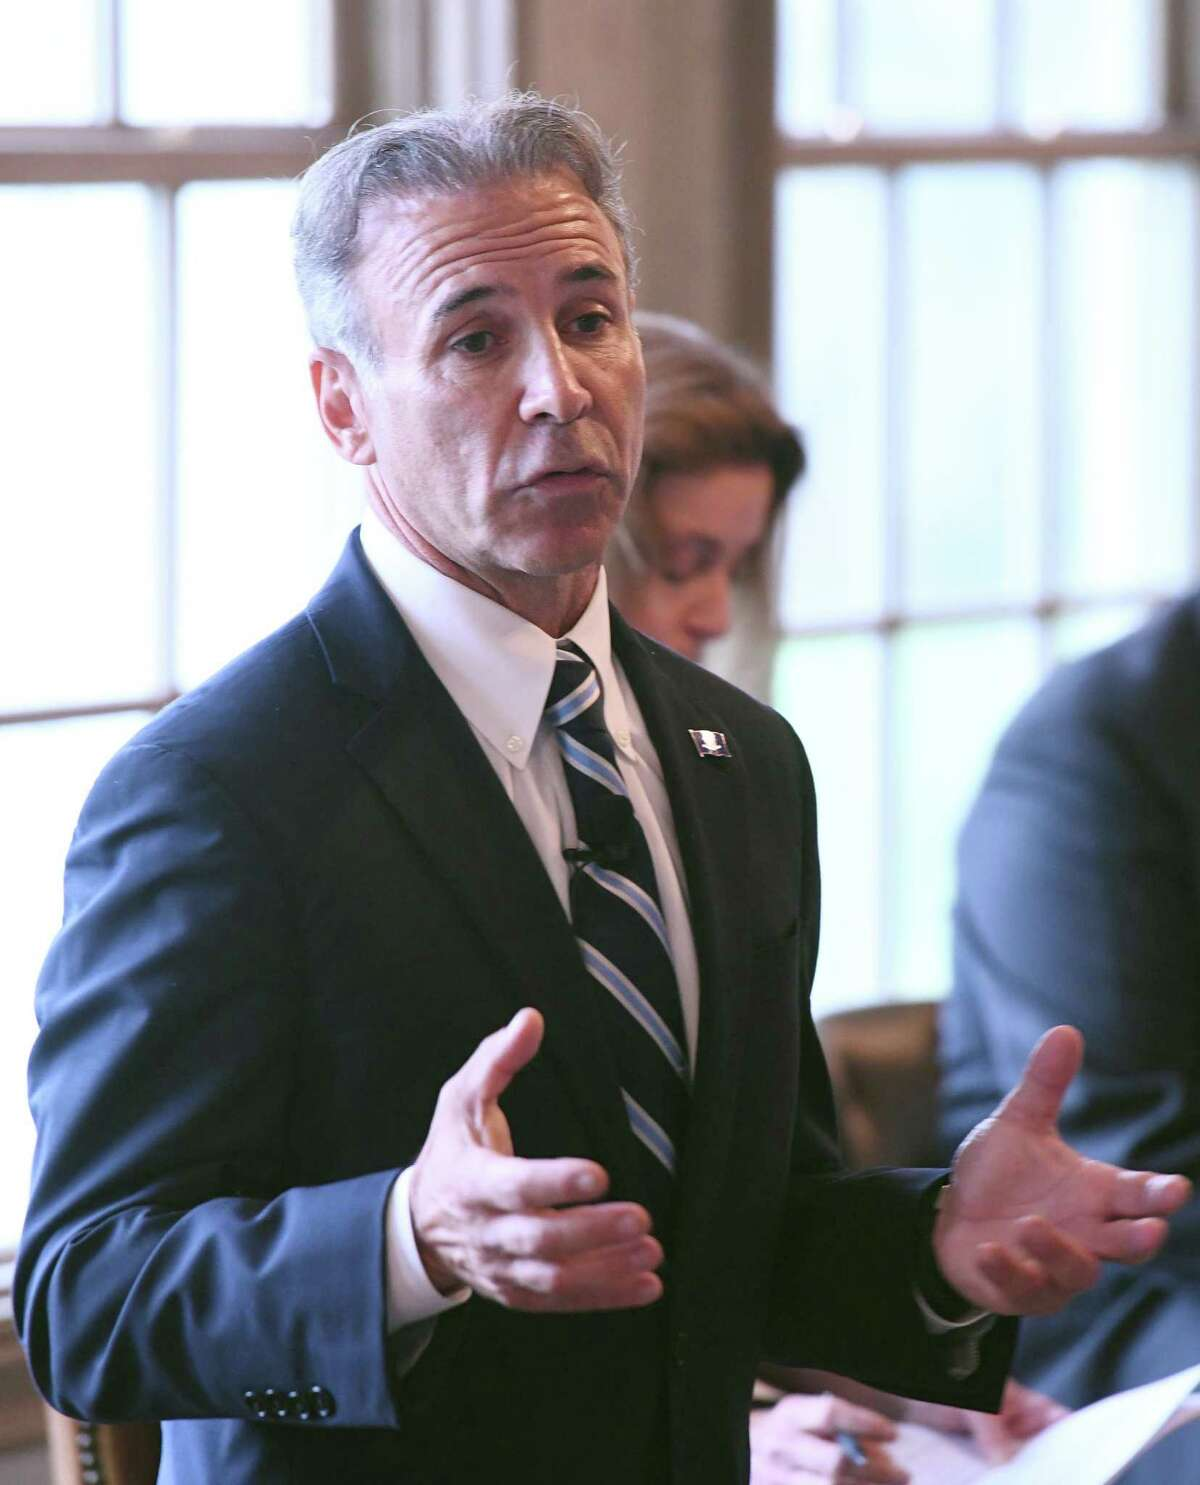 Republican candidate for First Selectman Fred Camillo speaks at the Greenwich Association of Realtors forum for First Selectman candidates at the Field Club of Greenwich in Greenwich, Conn. Wednesday, Oct. 16, 2019.